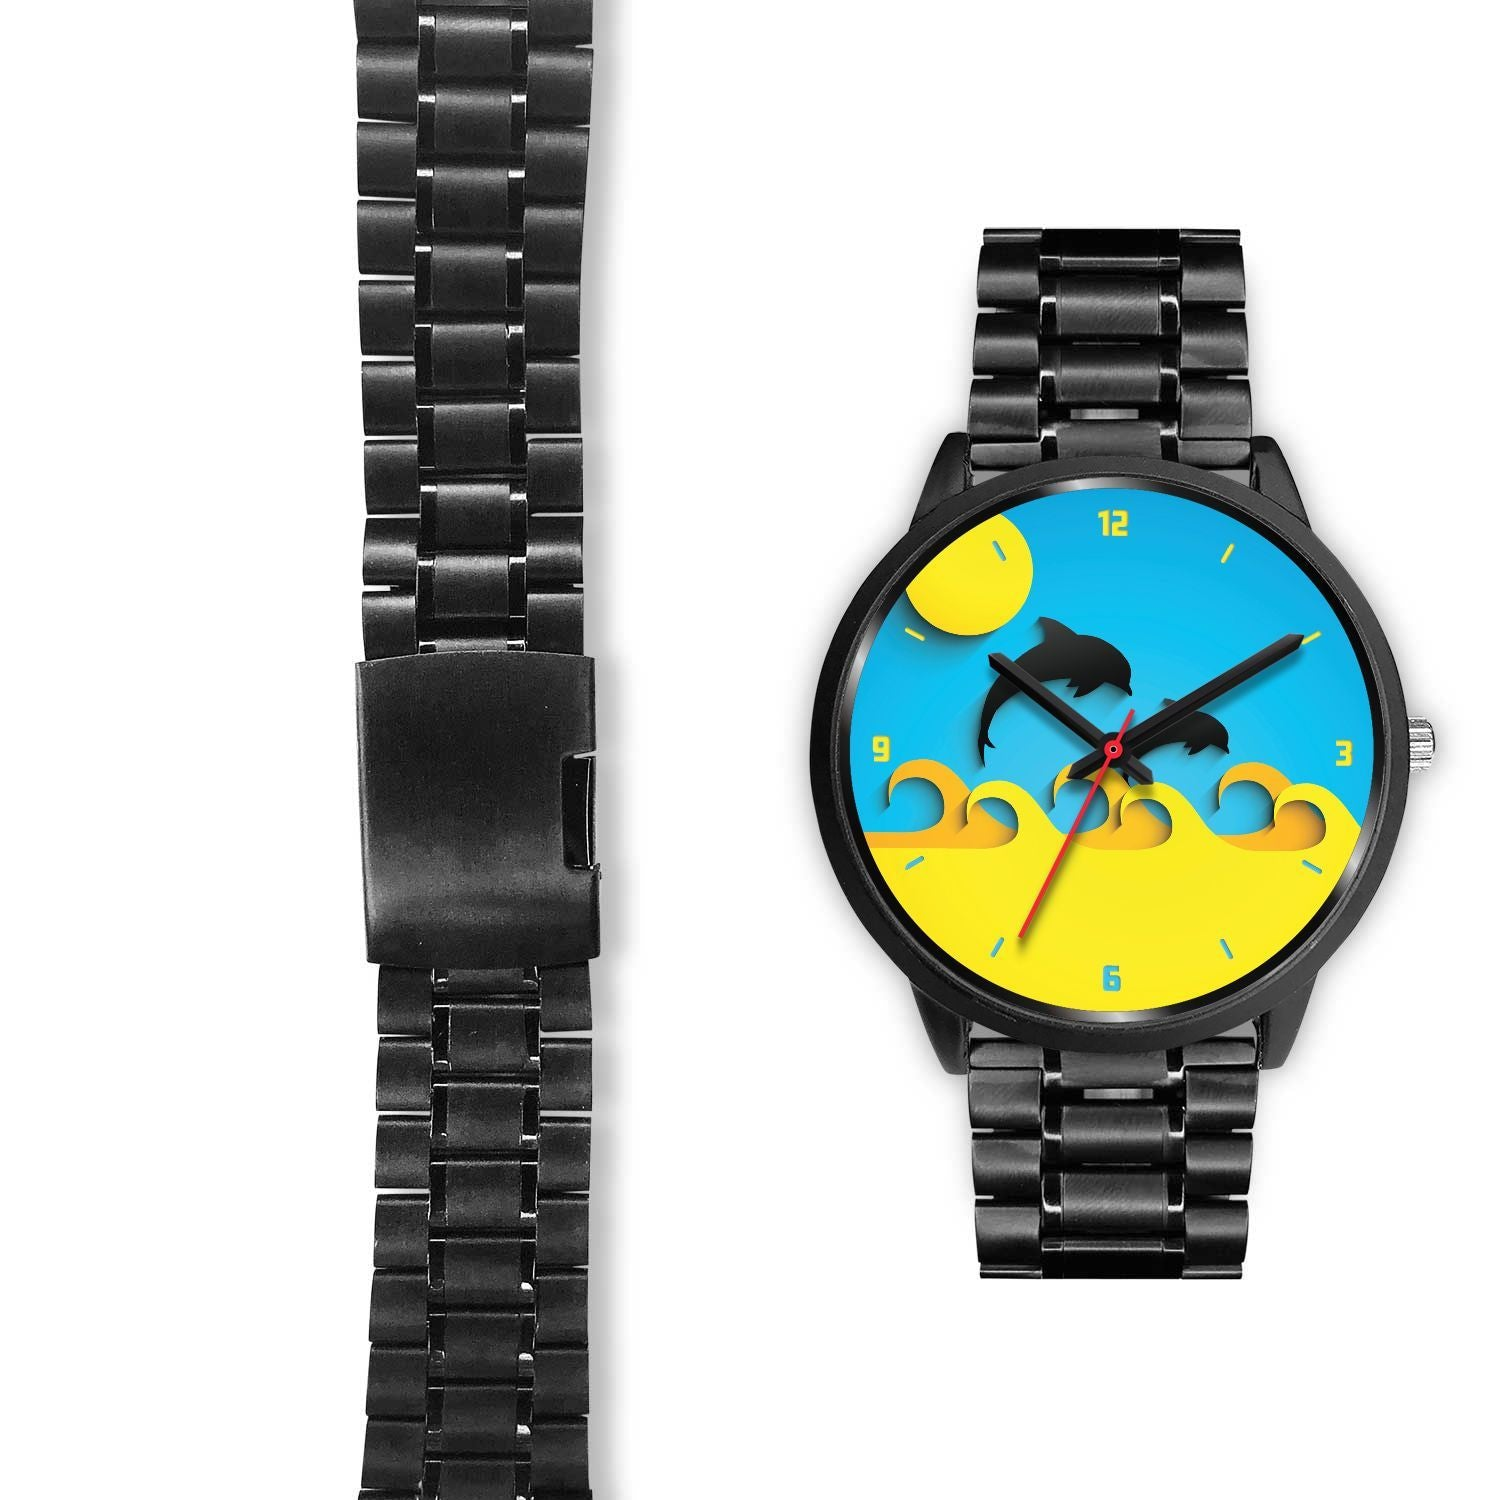 Dolphins at Play Customized Design Watch - Get Set Style Metro